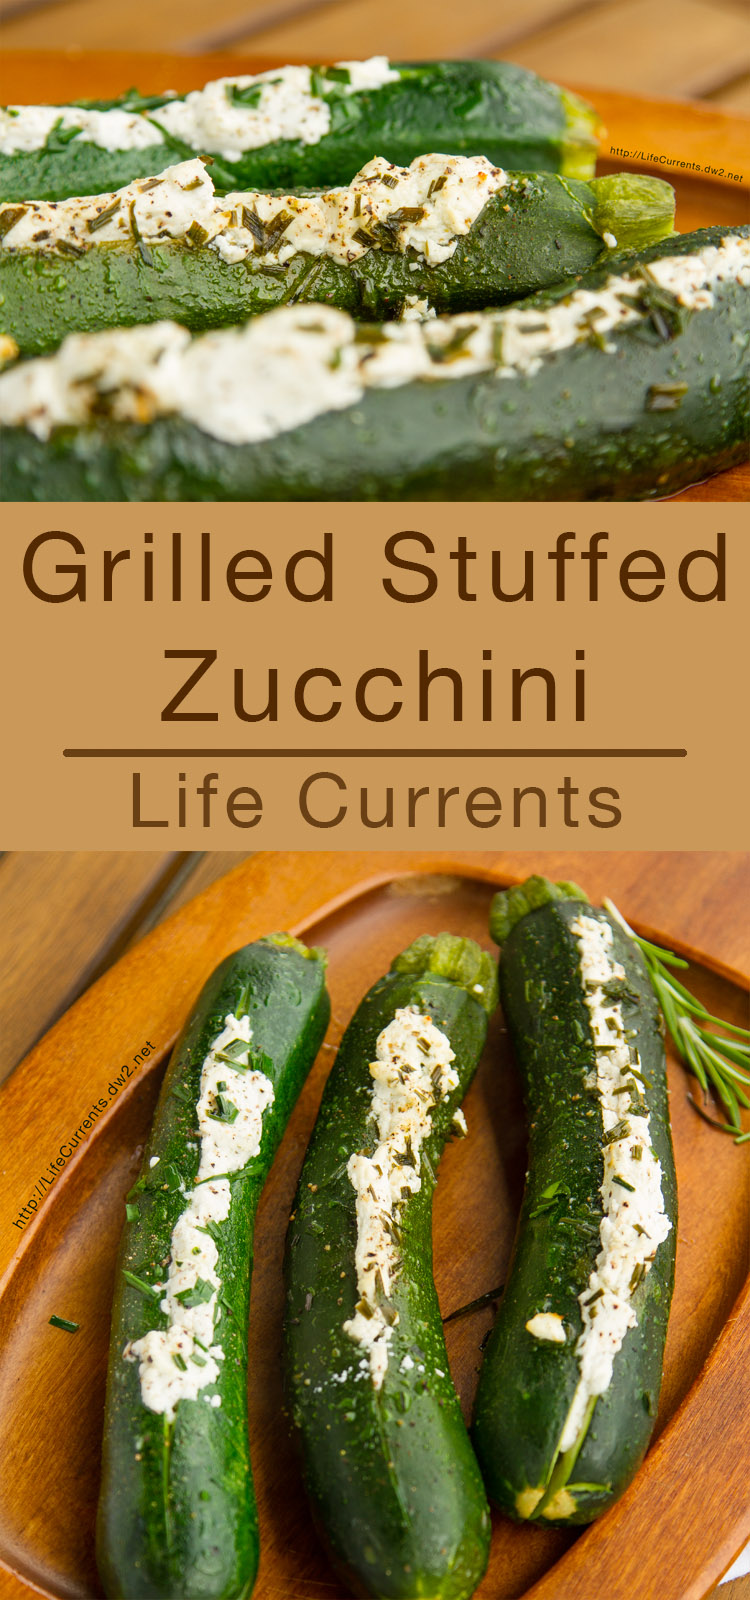 Grilled Stuffed Zucchini - long pin for pinterest with two images of zucchini stuffed with goat cheese and herbs on a wooden serving platter